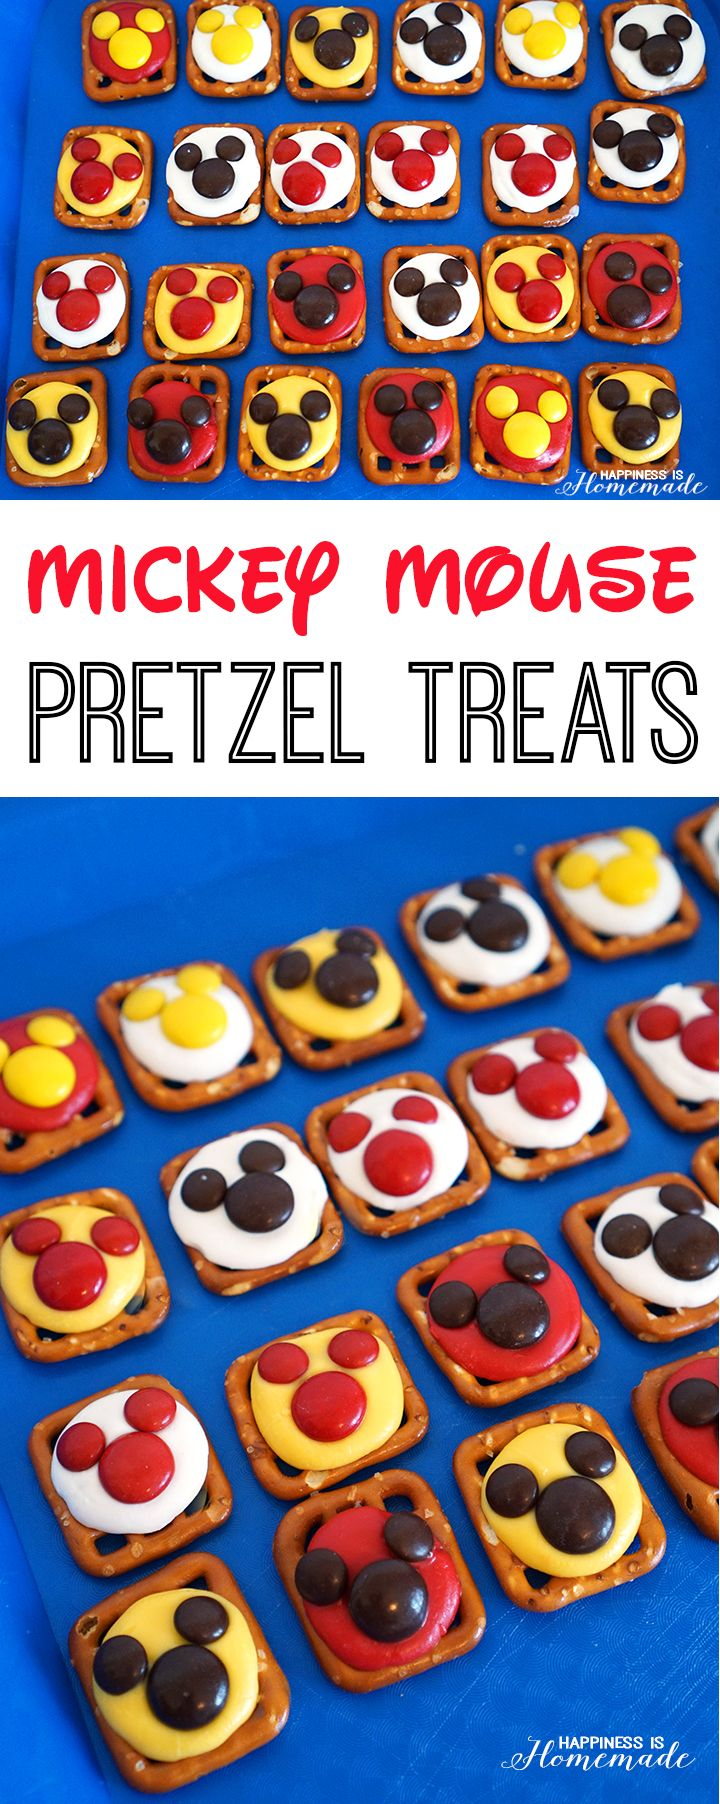 Fun Mickey Mouse pretzel treats - great for a #DisneyKids party snack! - Happiness is Homemade